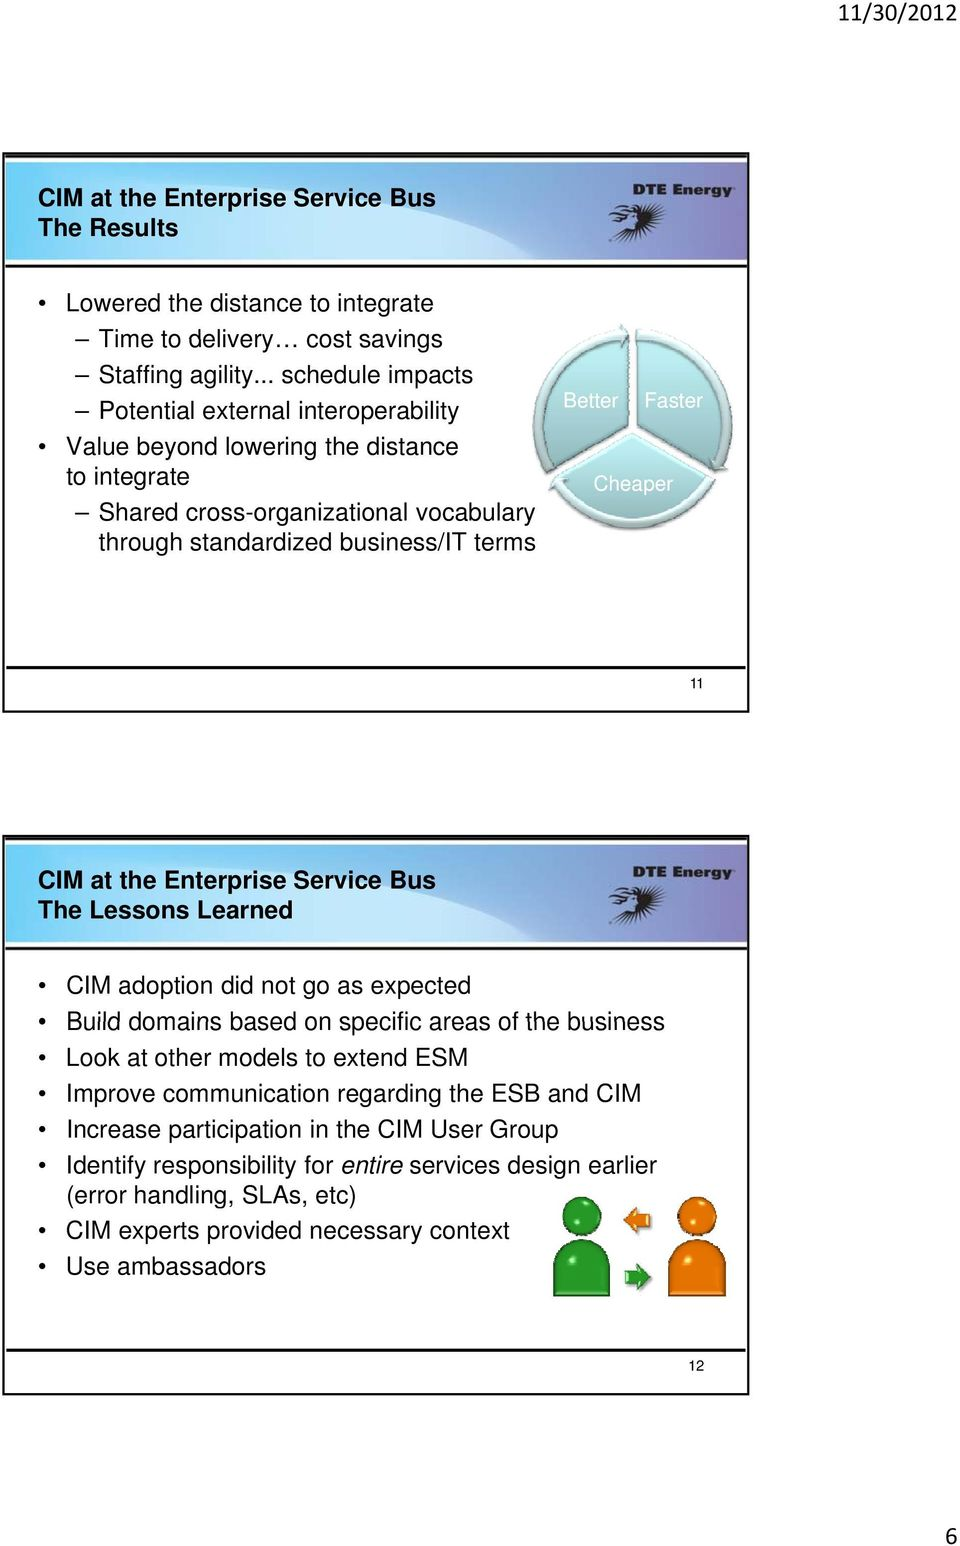 business/it terms Better Faster Cheaper The Lessons Learned CIM adoption did not go as expected Build domains based on specific areas of the business Look at other models